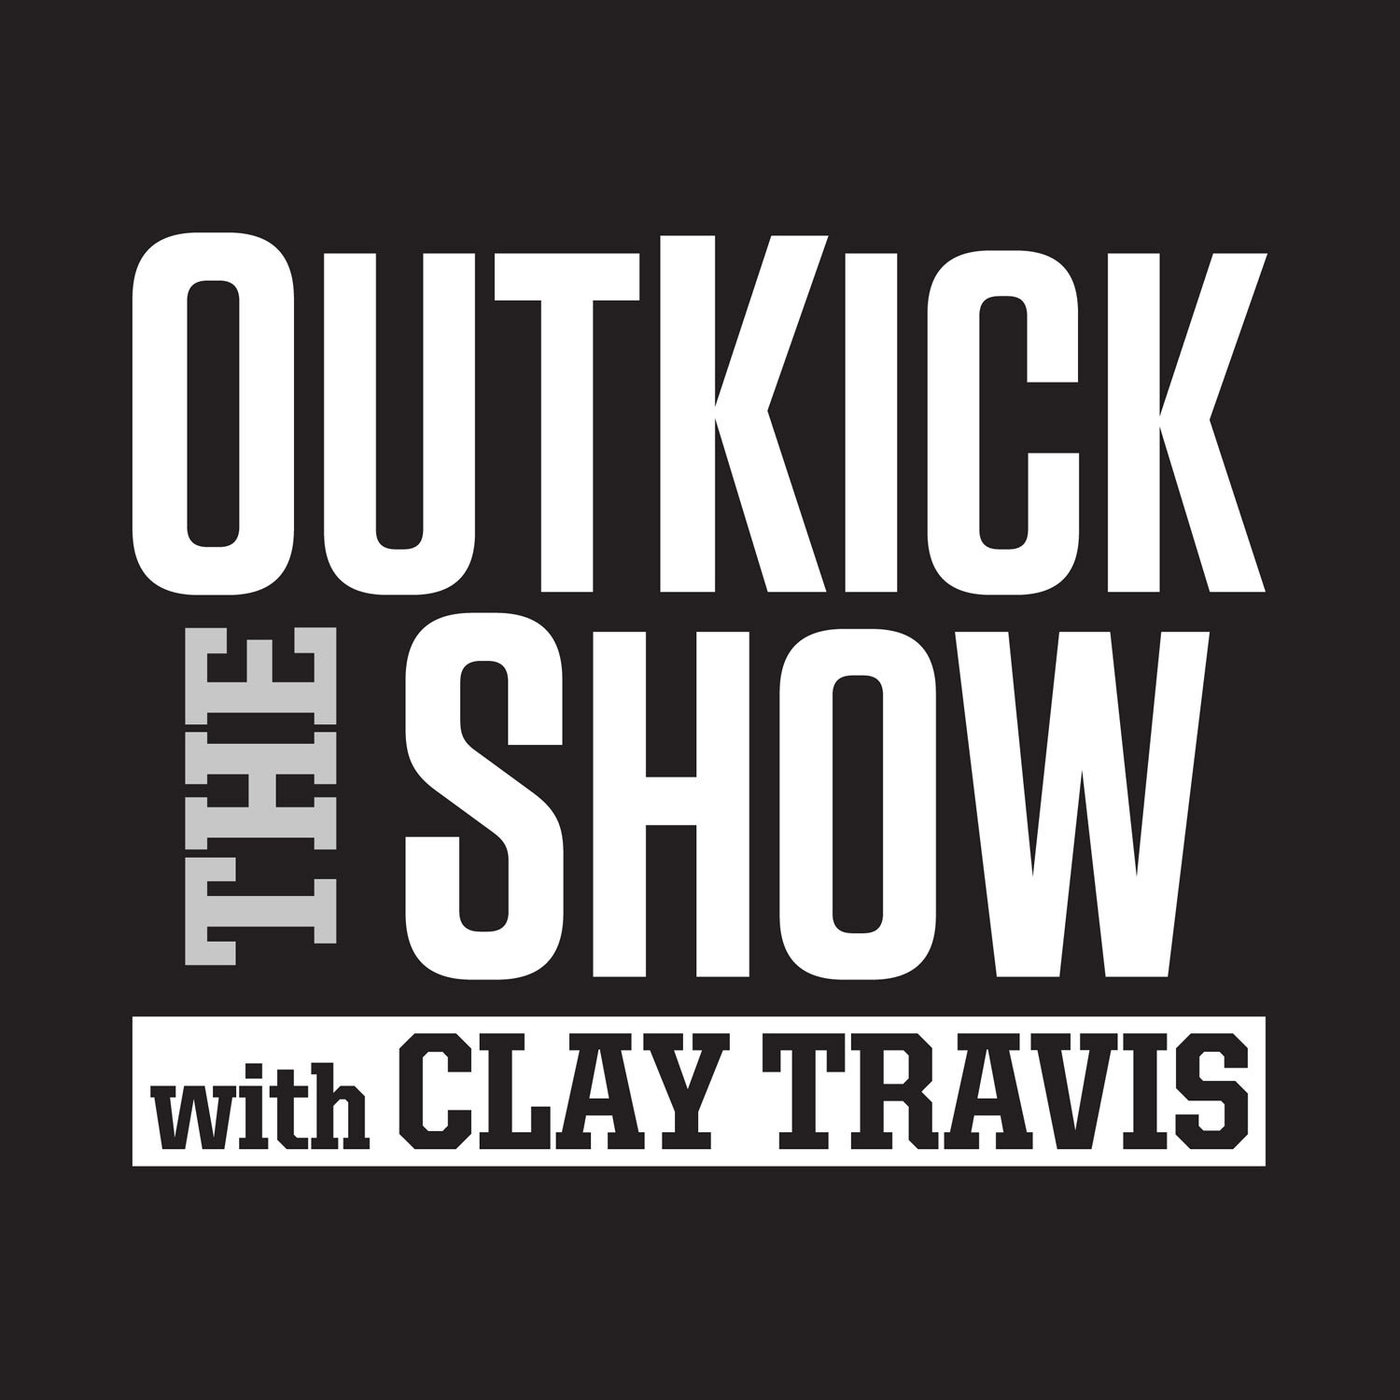 62f3dac3a7a Outkick The Show with Clay Travis | Premium Podcast Leader. Cadence13.